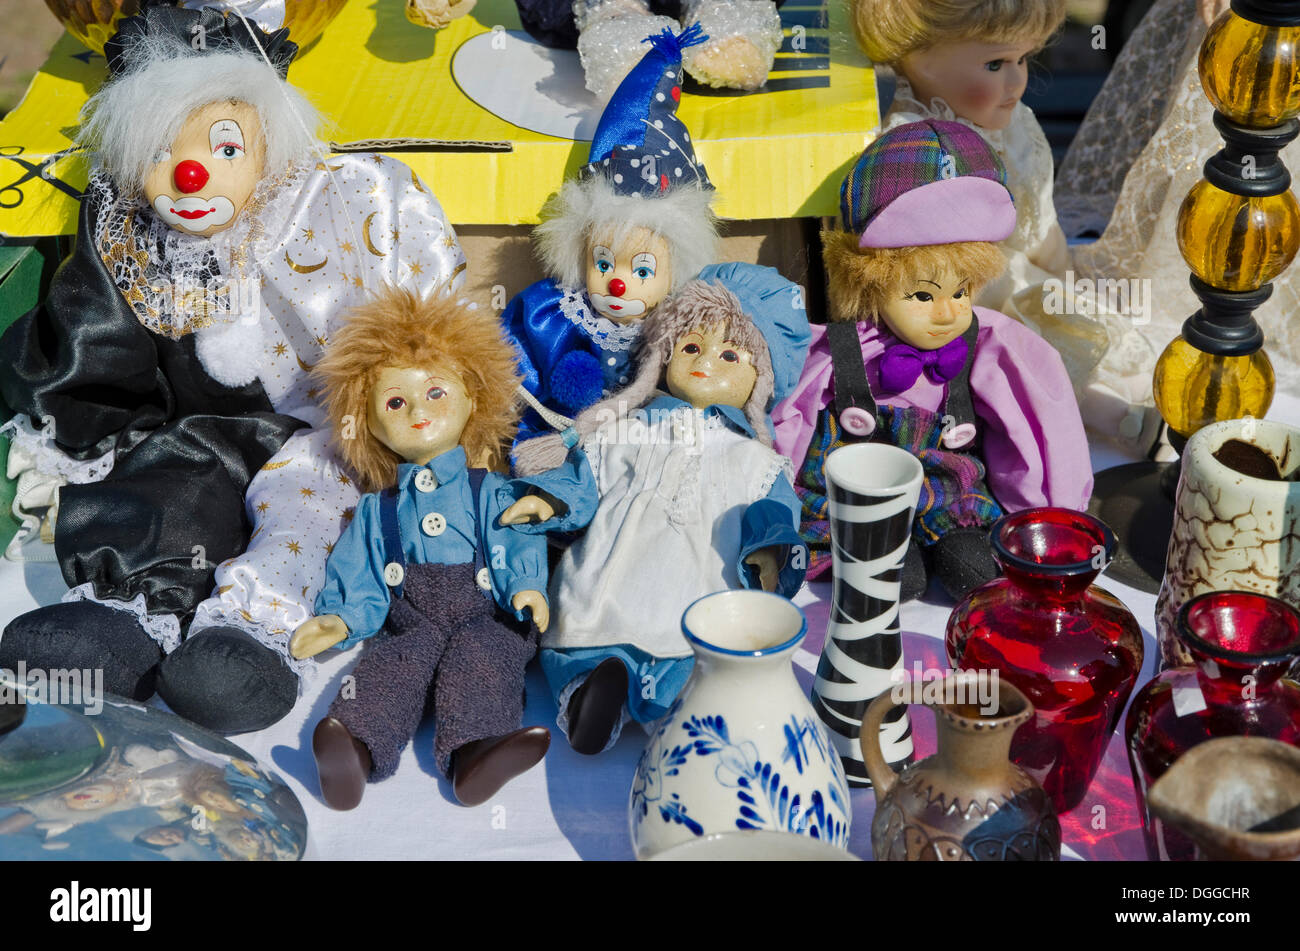 Old Clown Dolls Stock Photos & Old Clown Dolls Stock Images